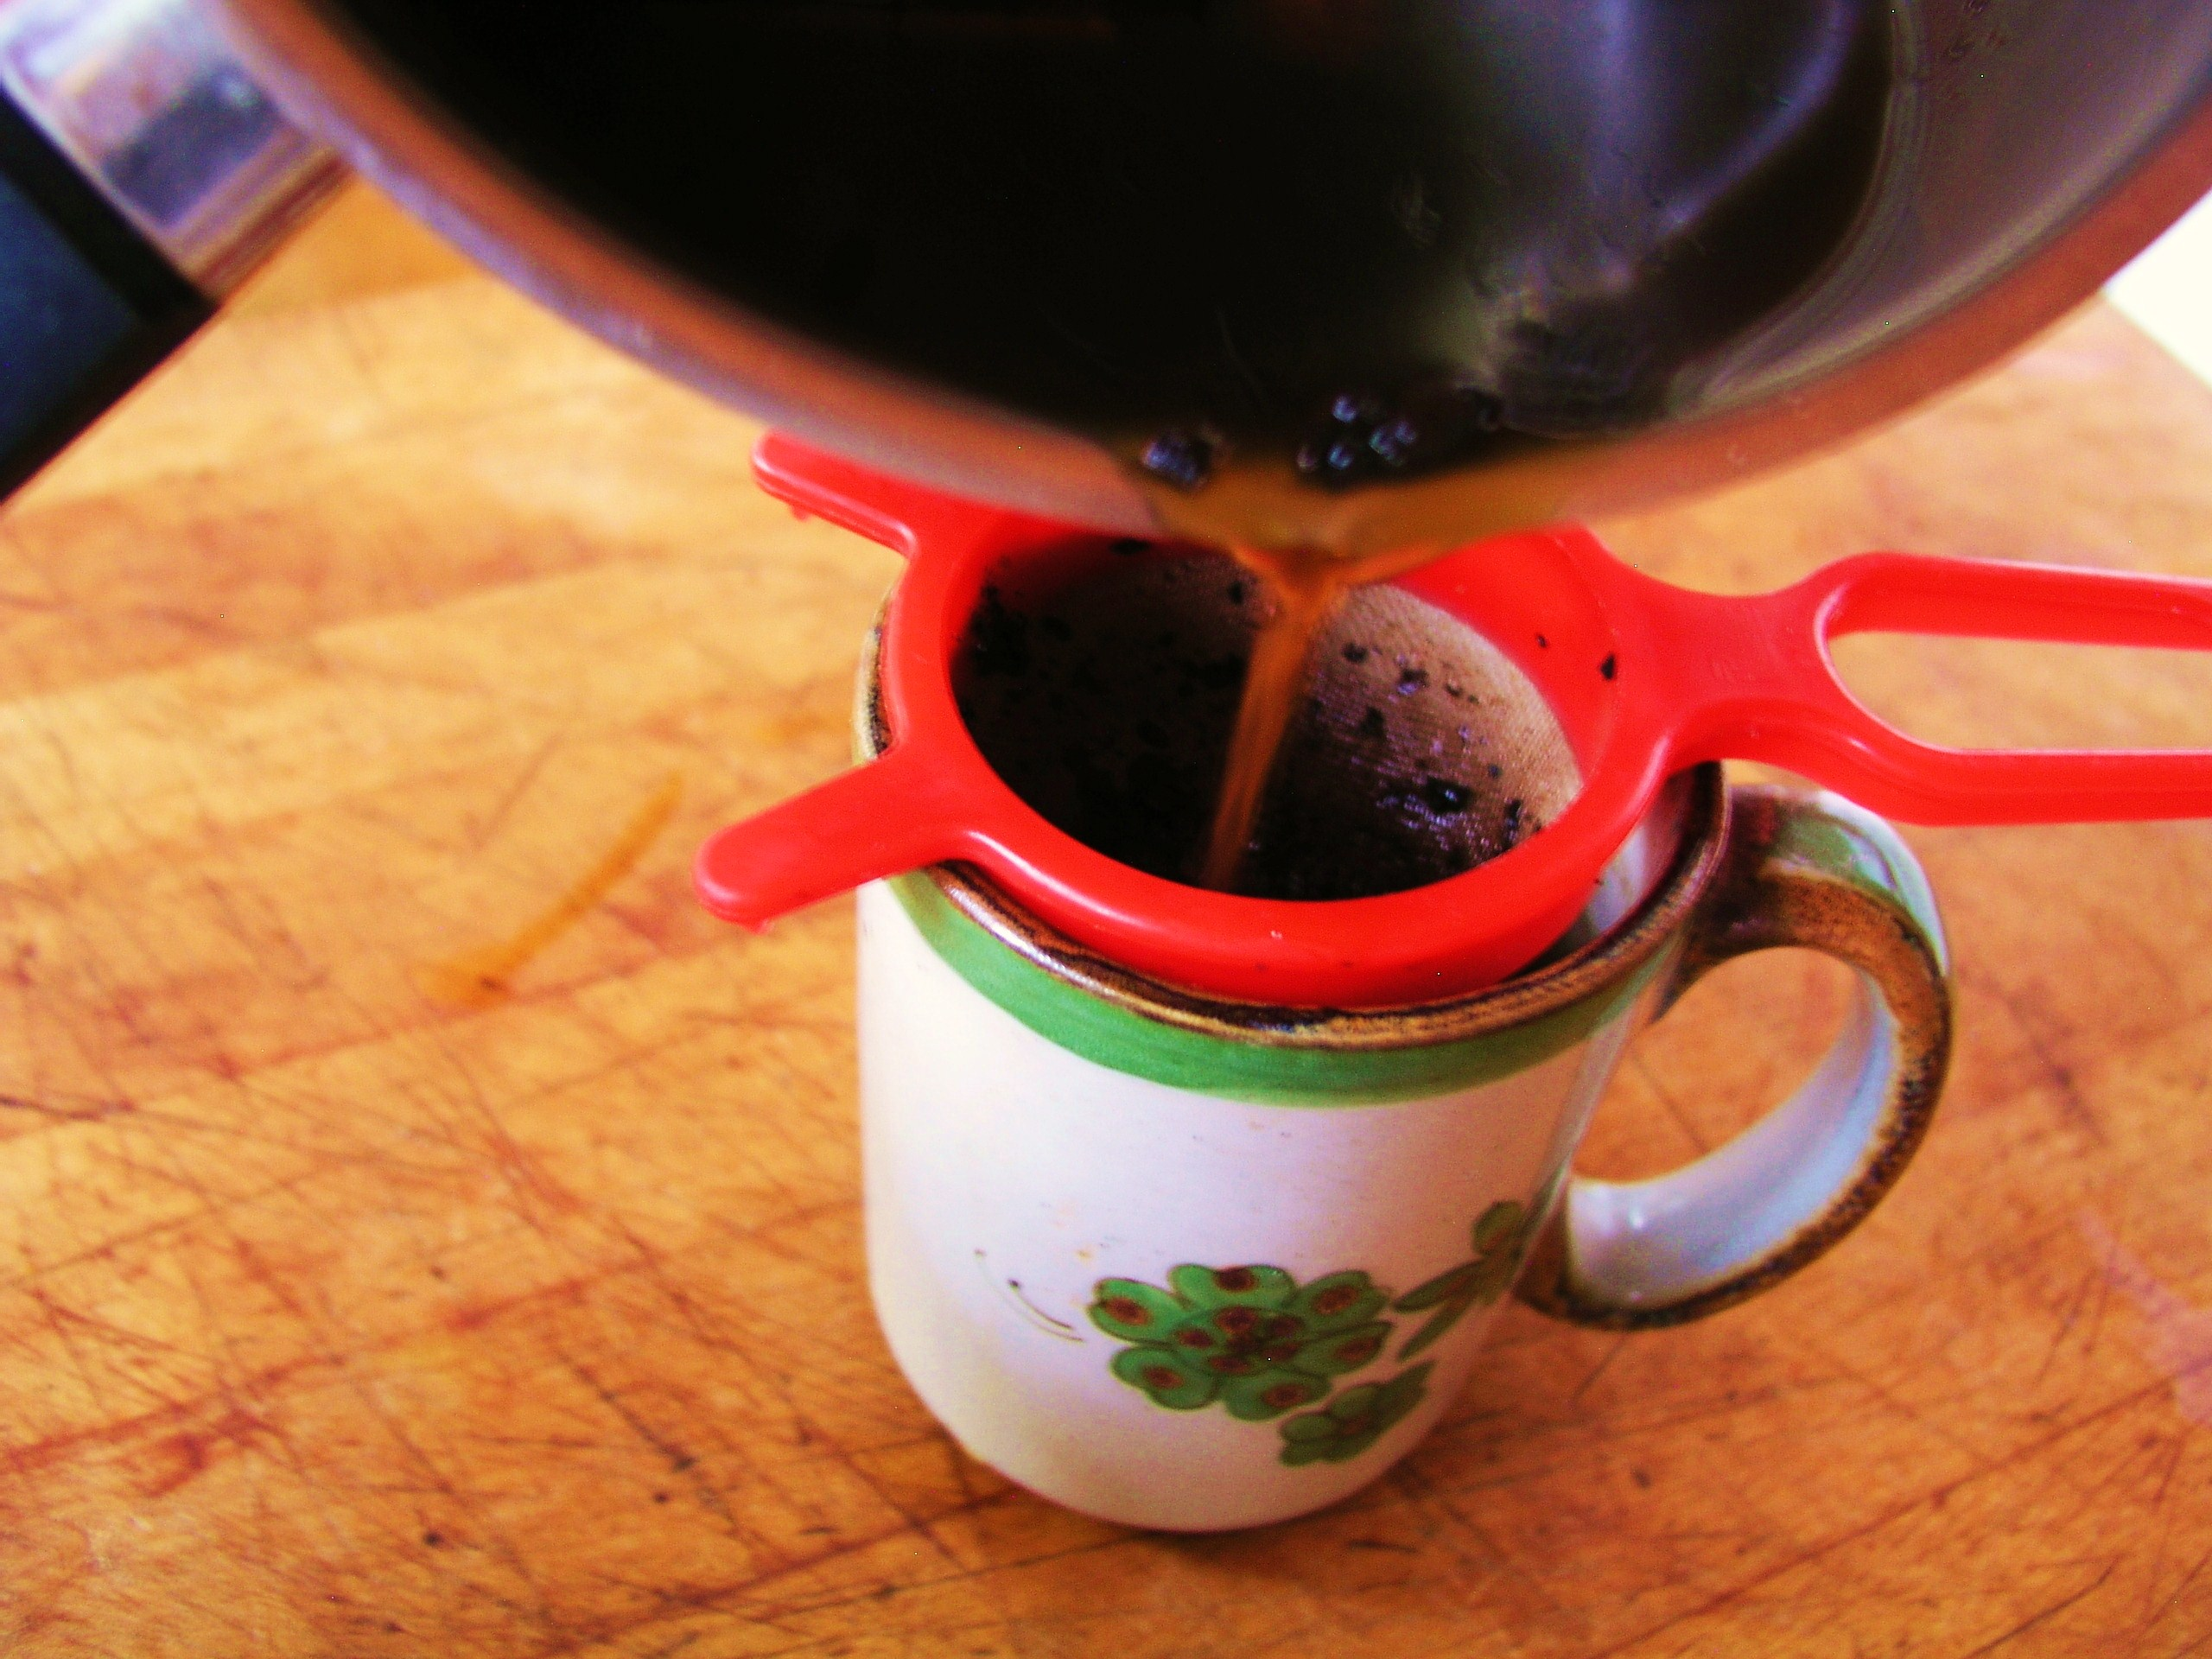 Cafe de<br /><br /> Olla (Image: Cooking In Mexico)